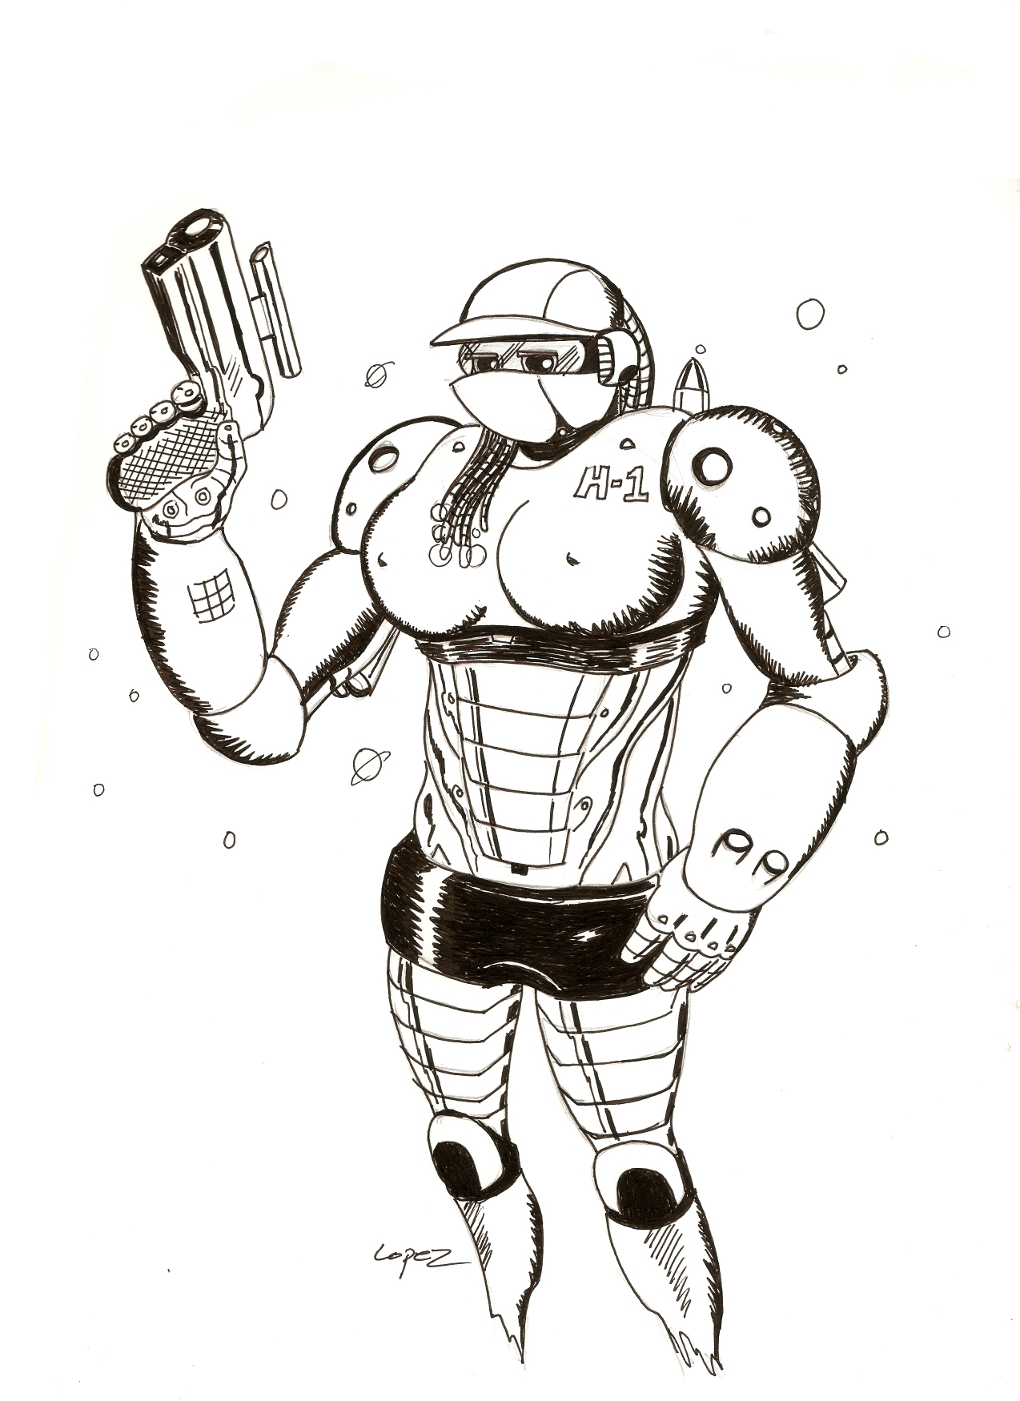 Busty Robo H-1 for Inktober